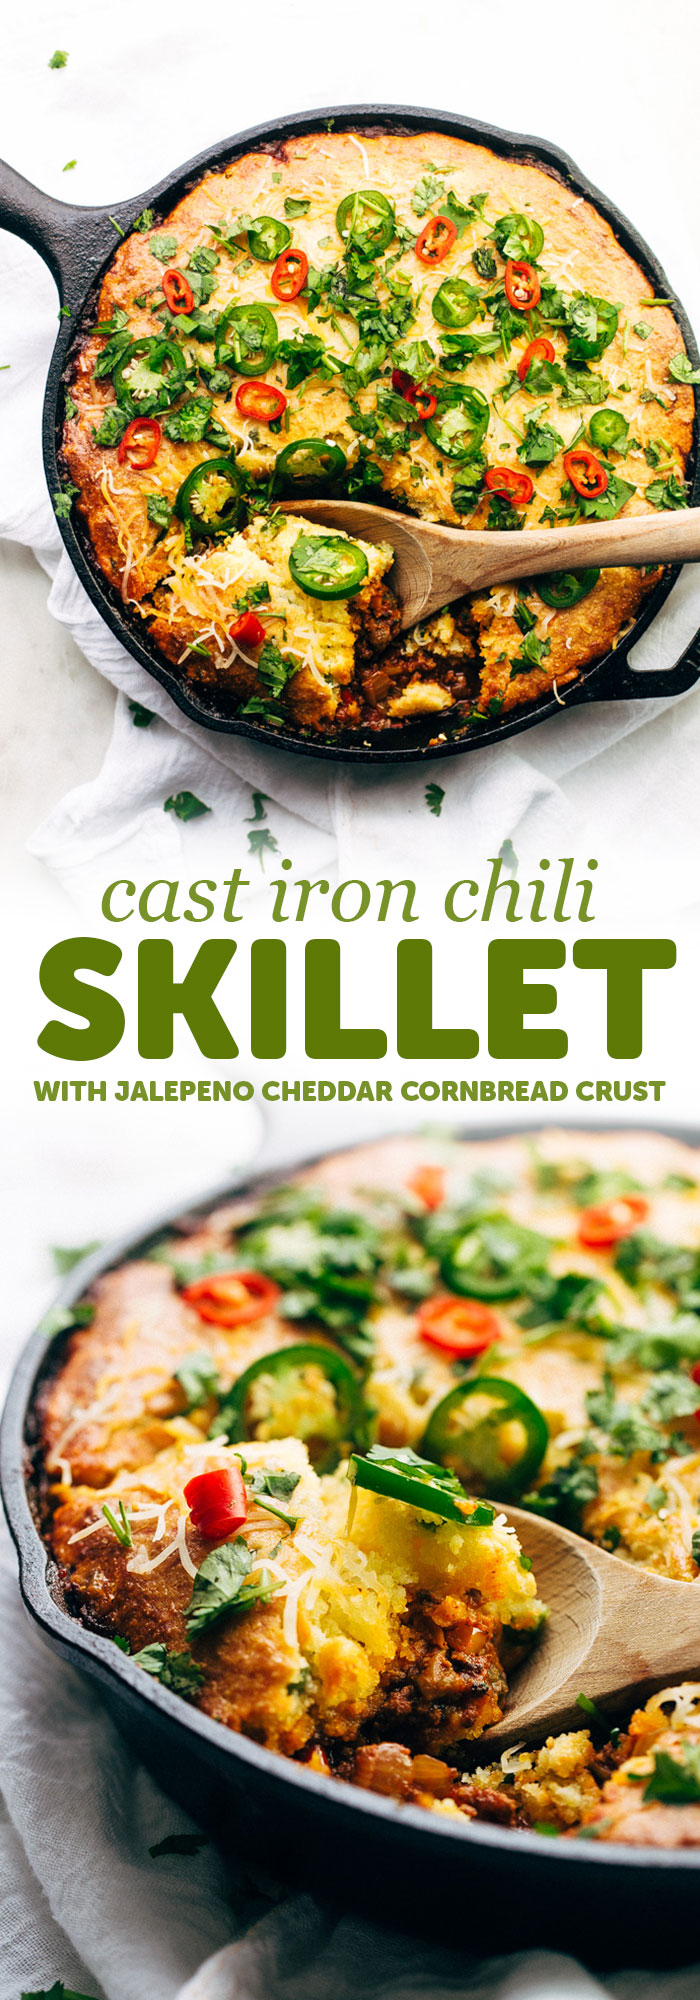 Skillet Chili with Jalapeño Cheddar Cornbread Crust - A simple chili and cornbread recipe that takes comes together in one pan and is so hearty and filling! #cornbread #chili #skilletchili #comfortfood | Littlespicejar.com